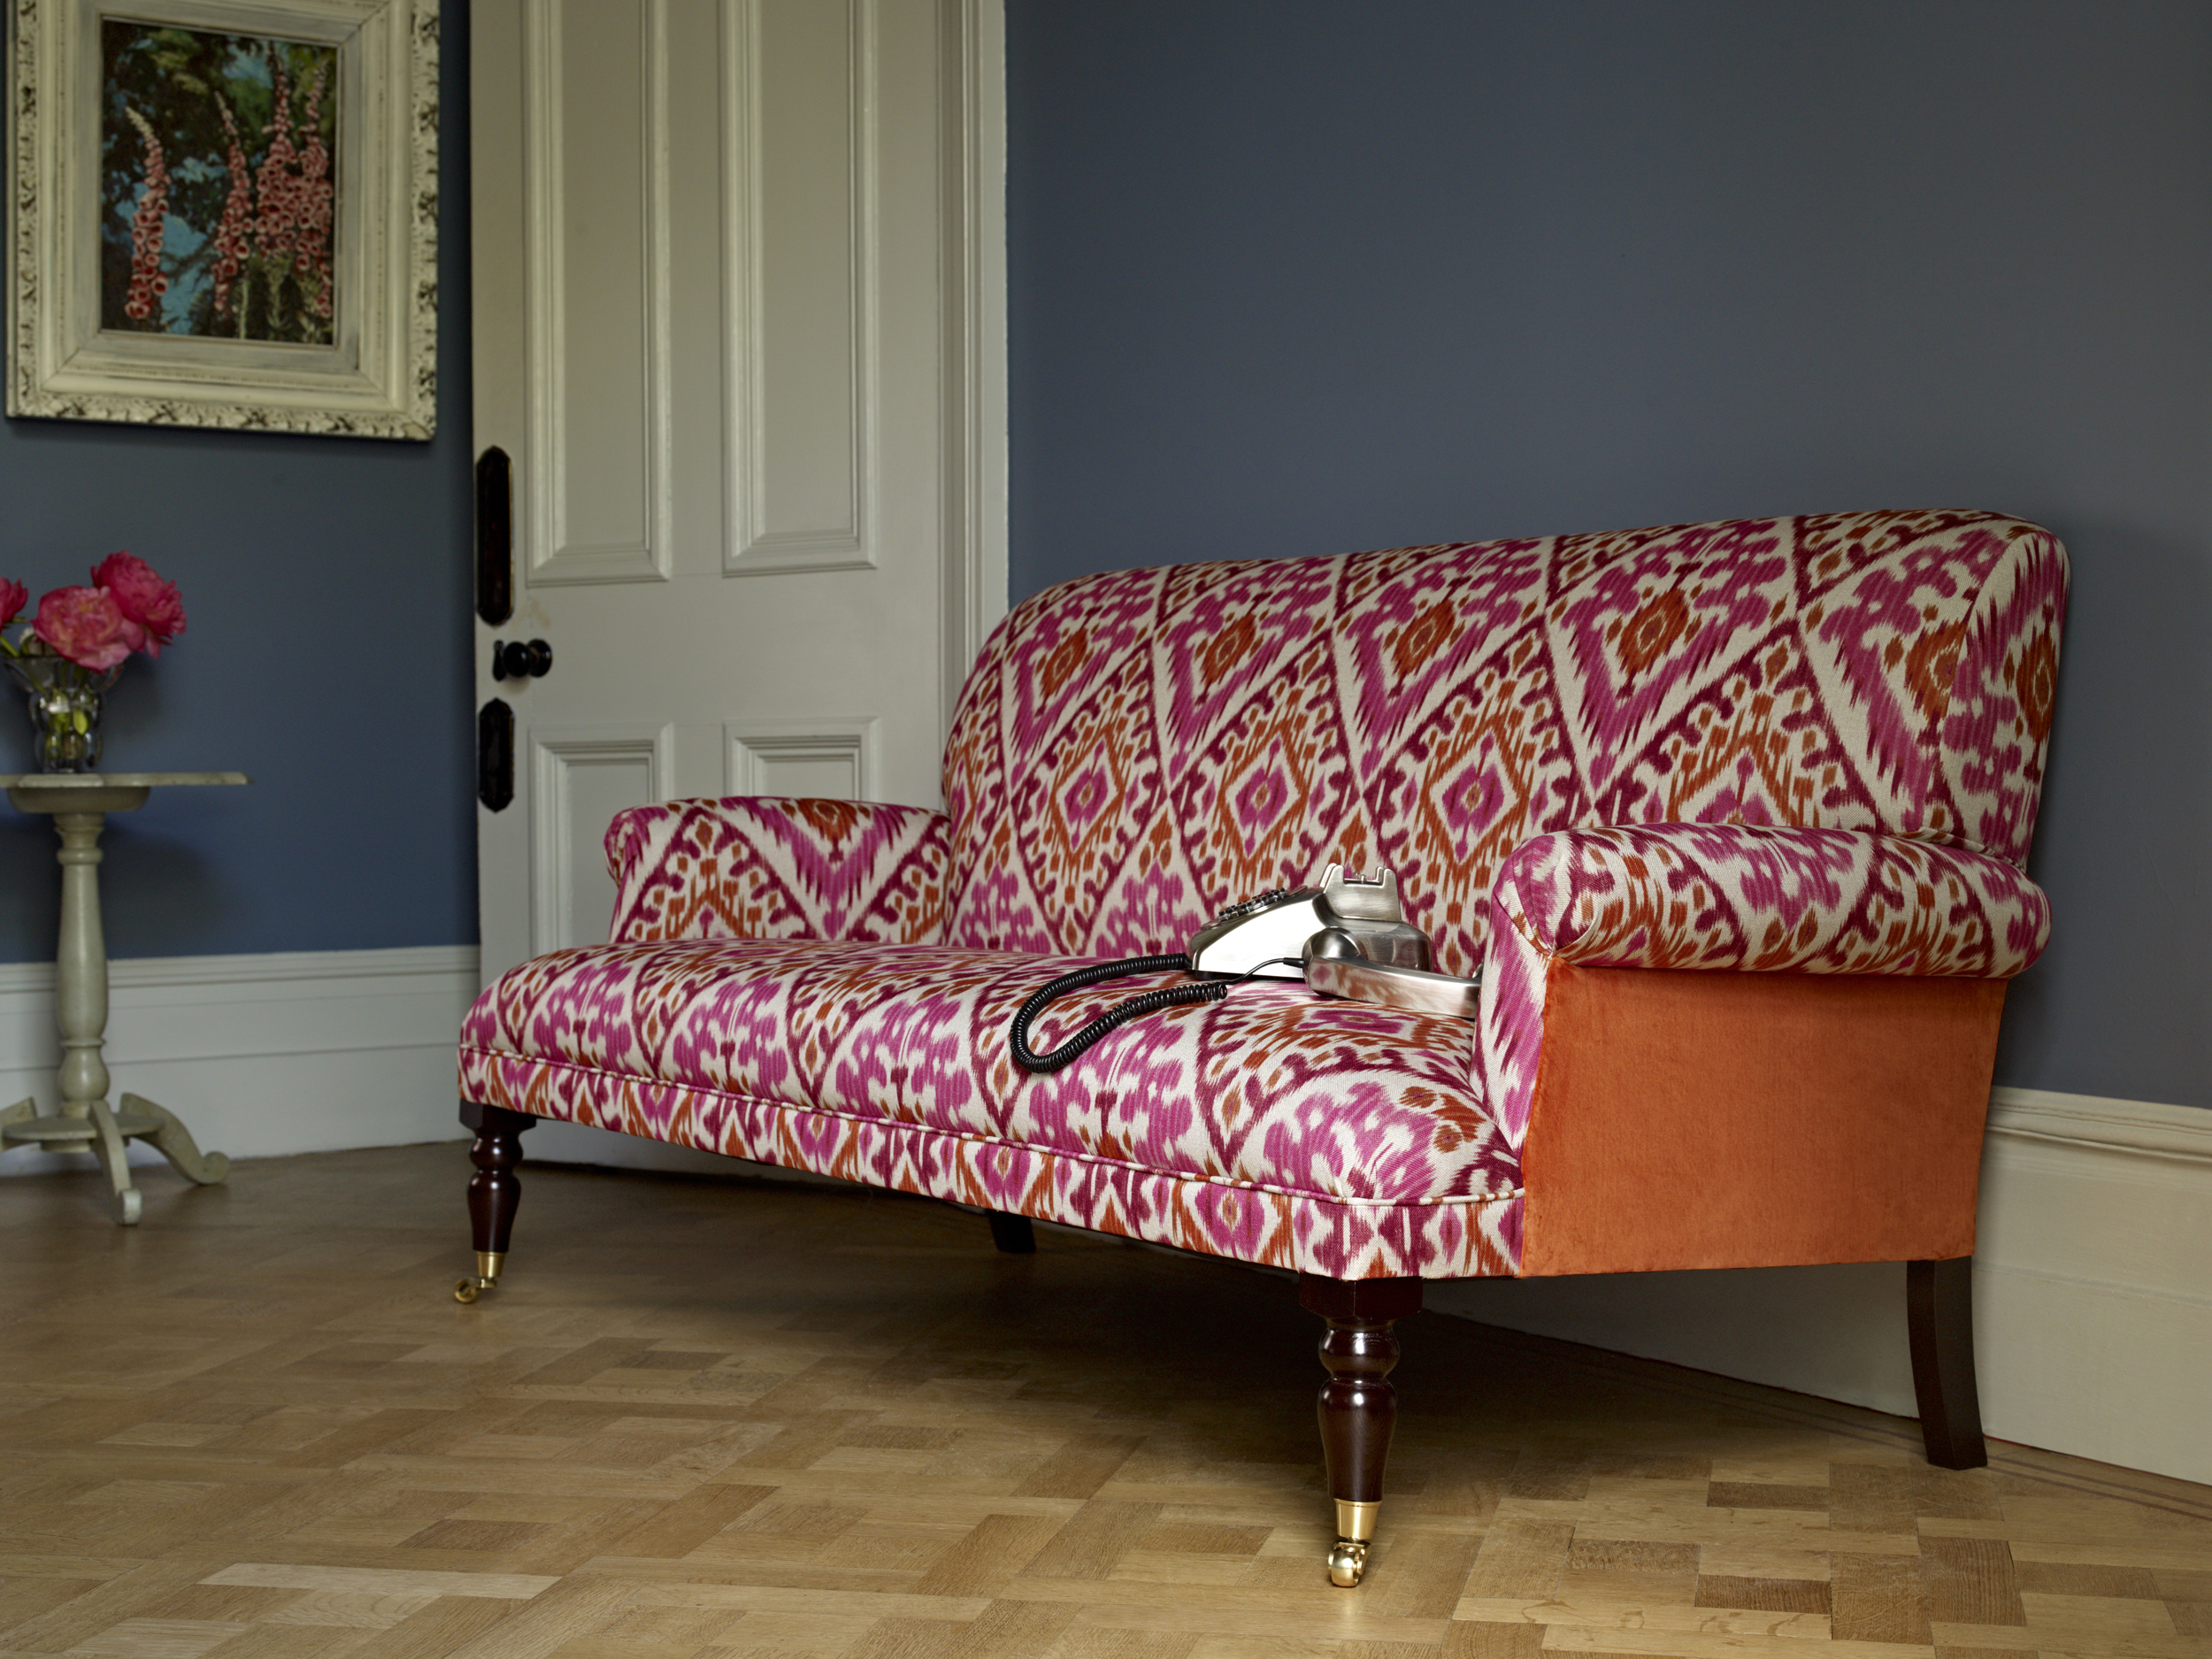 sofasandstuff reviews home goods furniture sofas a buyer s guide to mad about the house midhurst